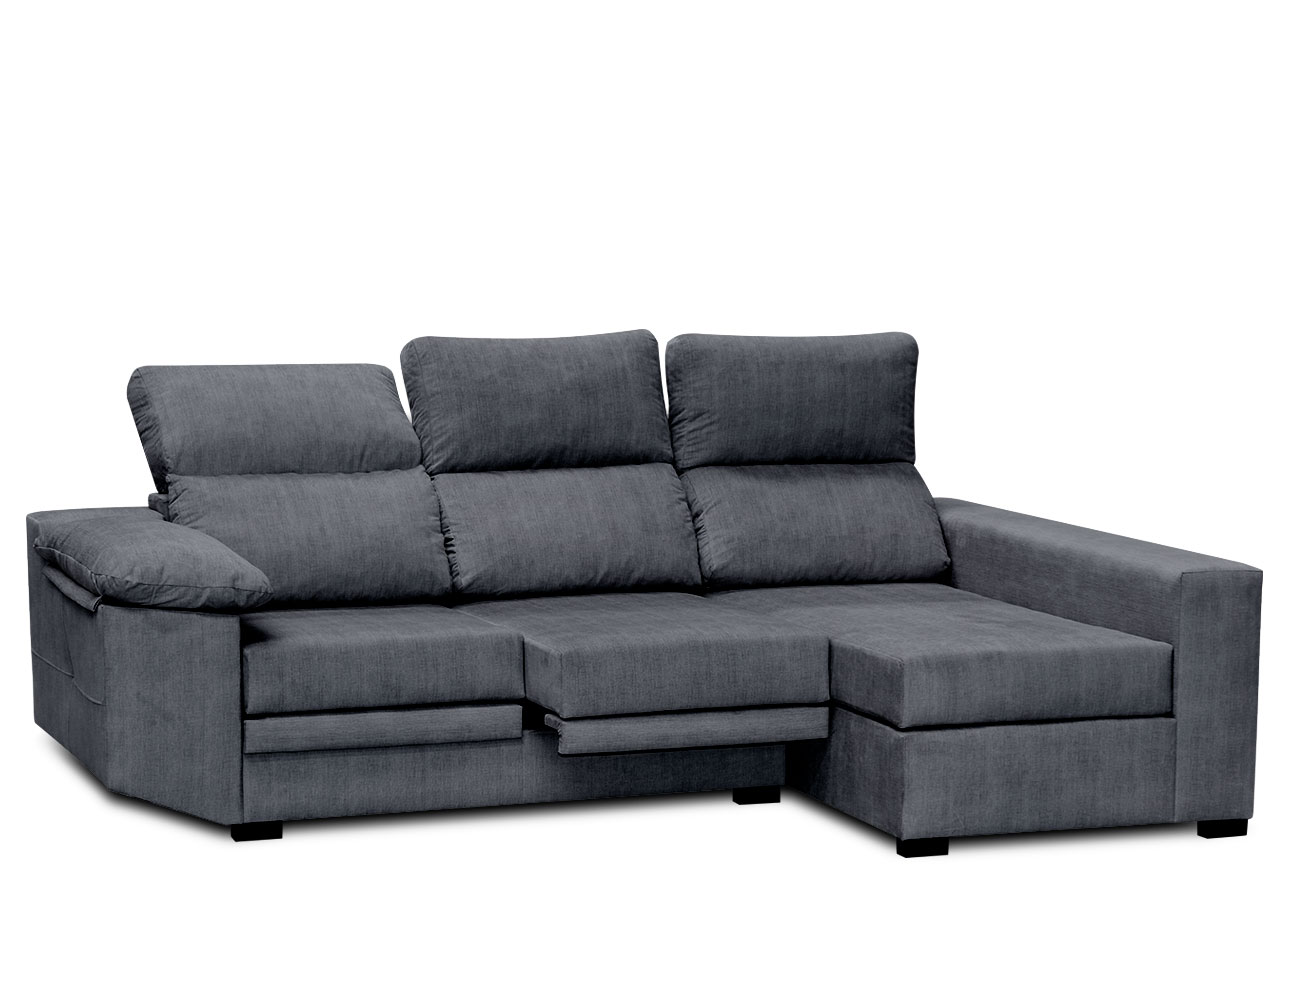 Sofa chaiselongue moderno ceniza 2